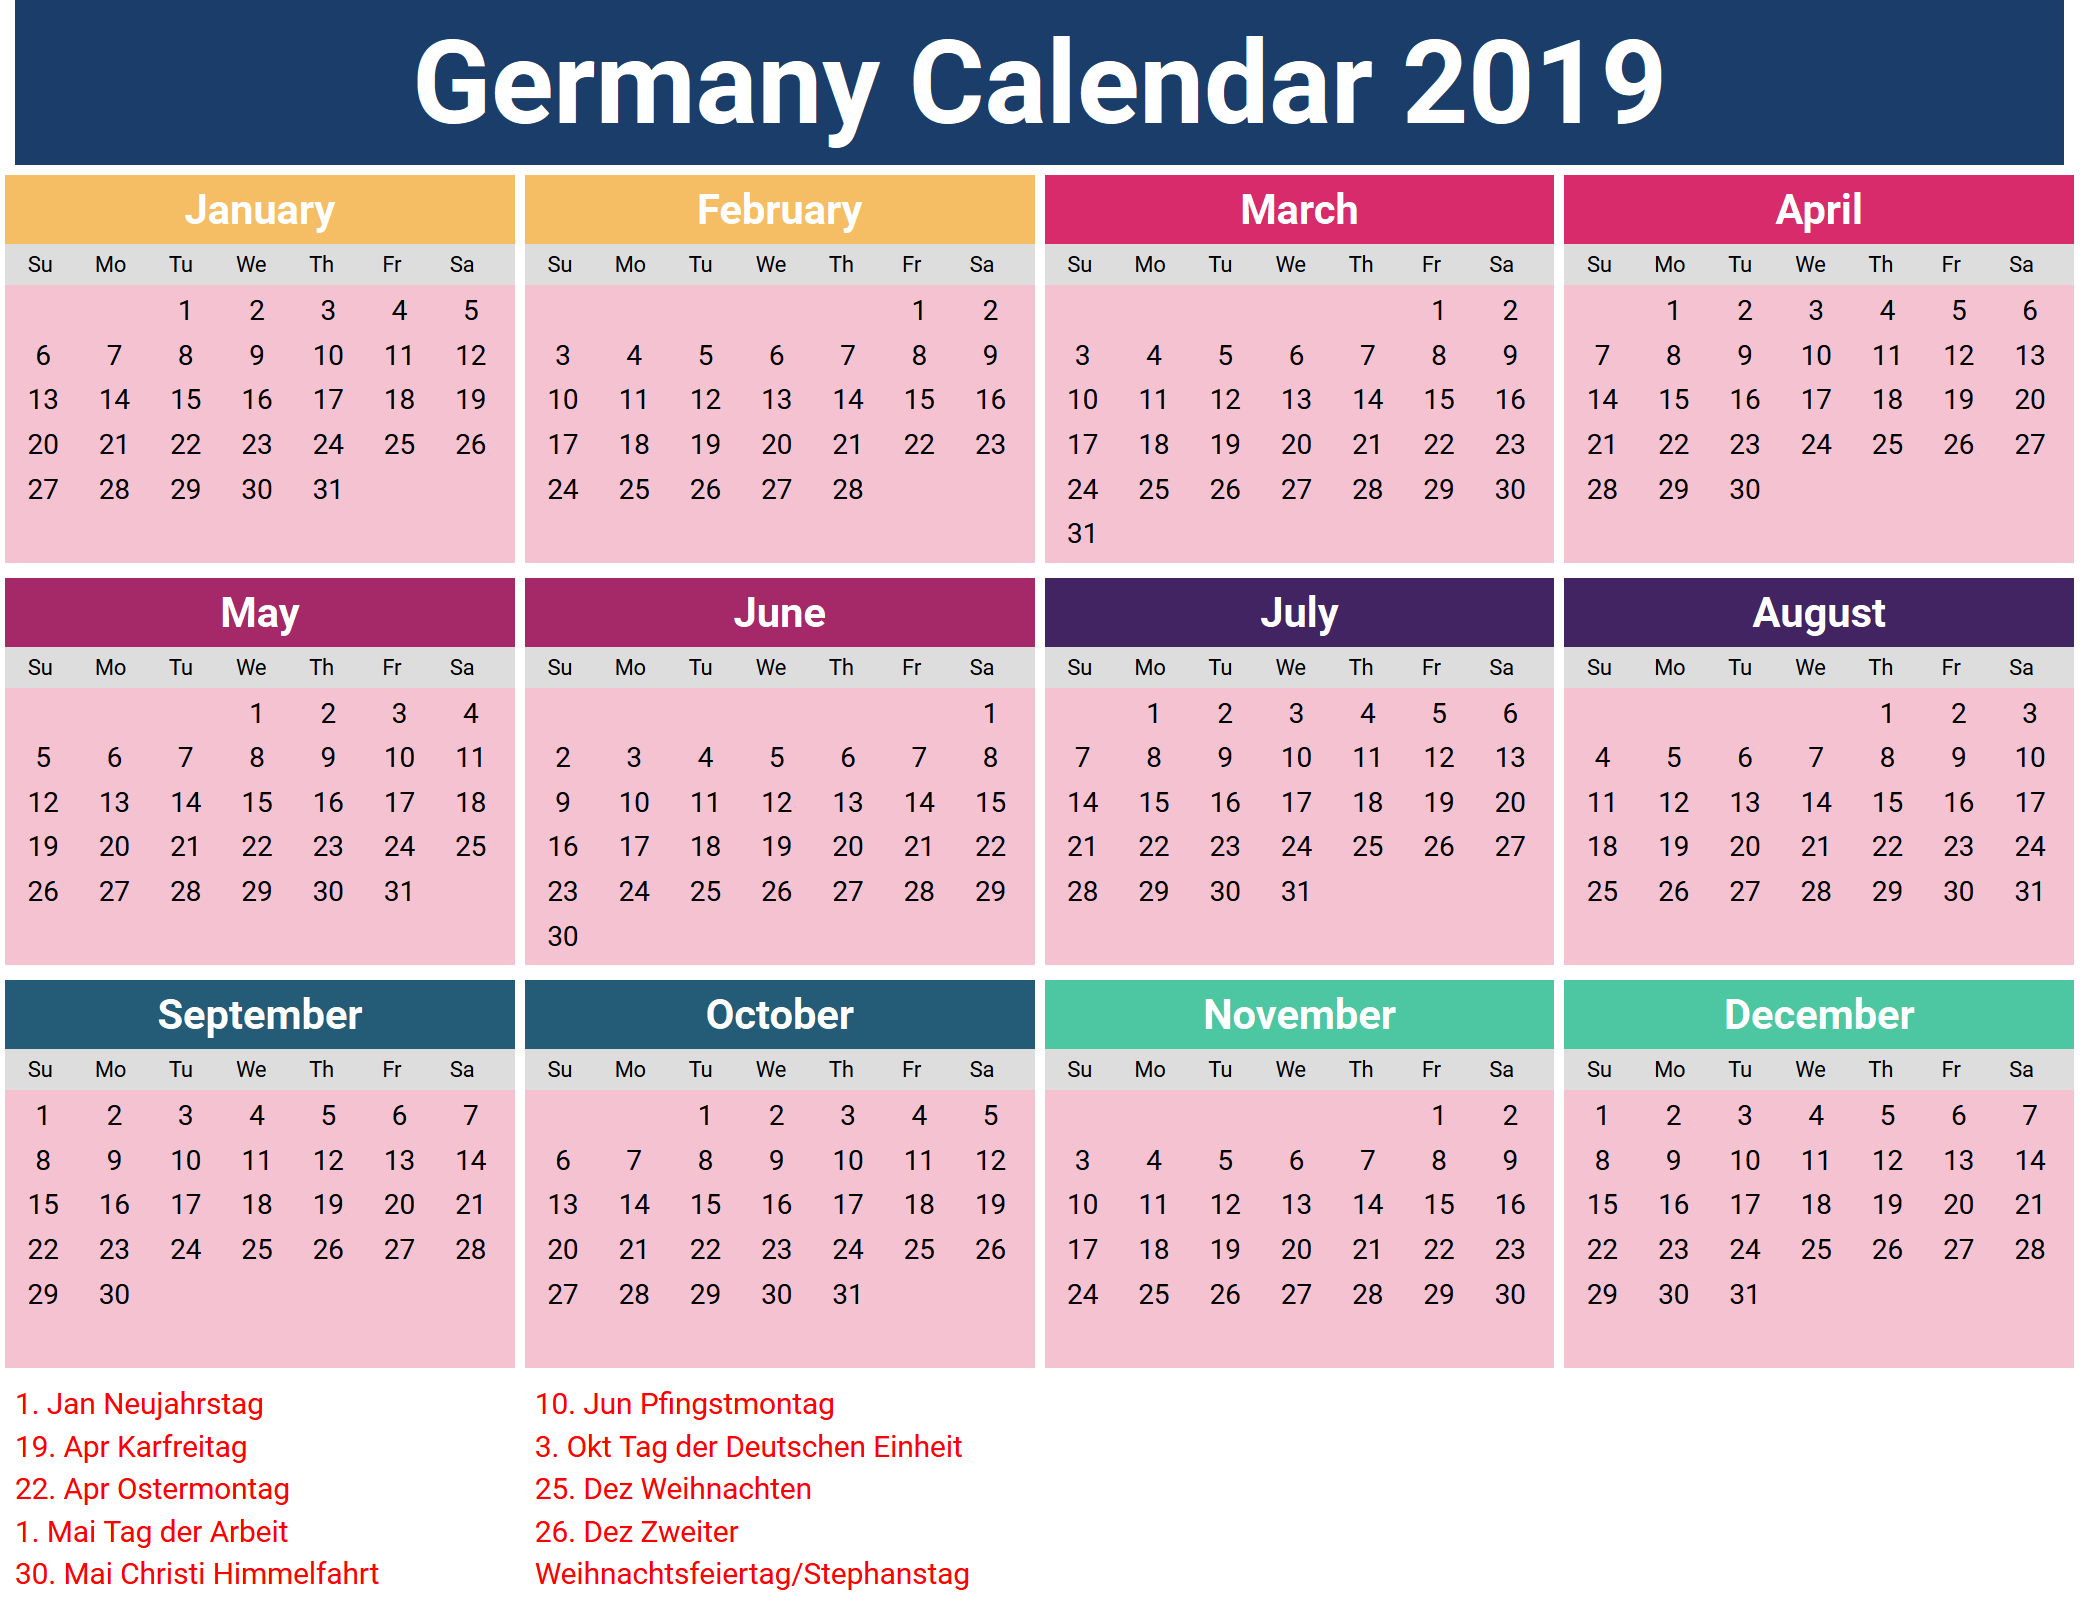 February 2019 Calendar Holidays Germany